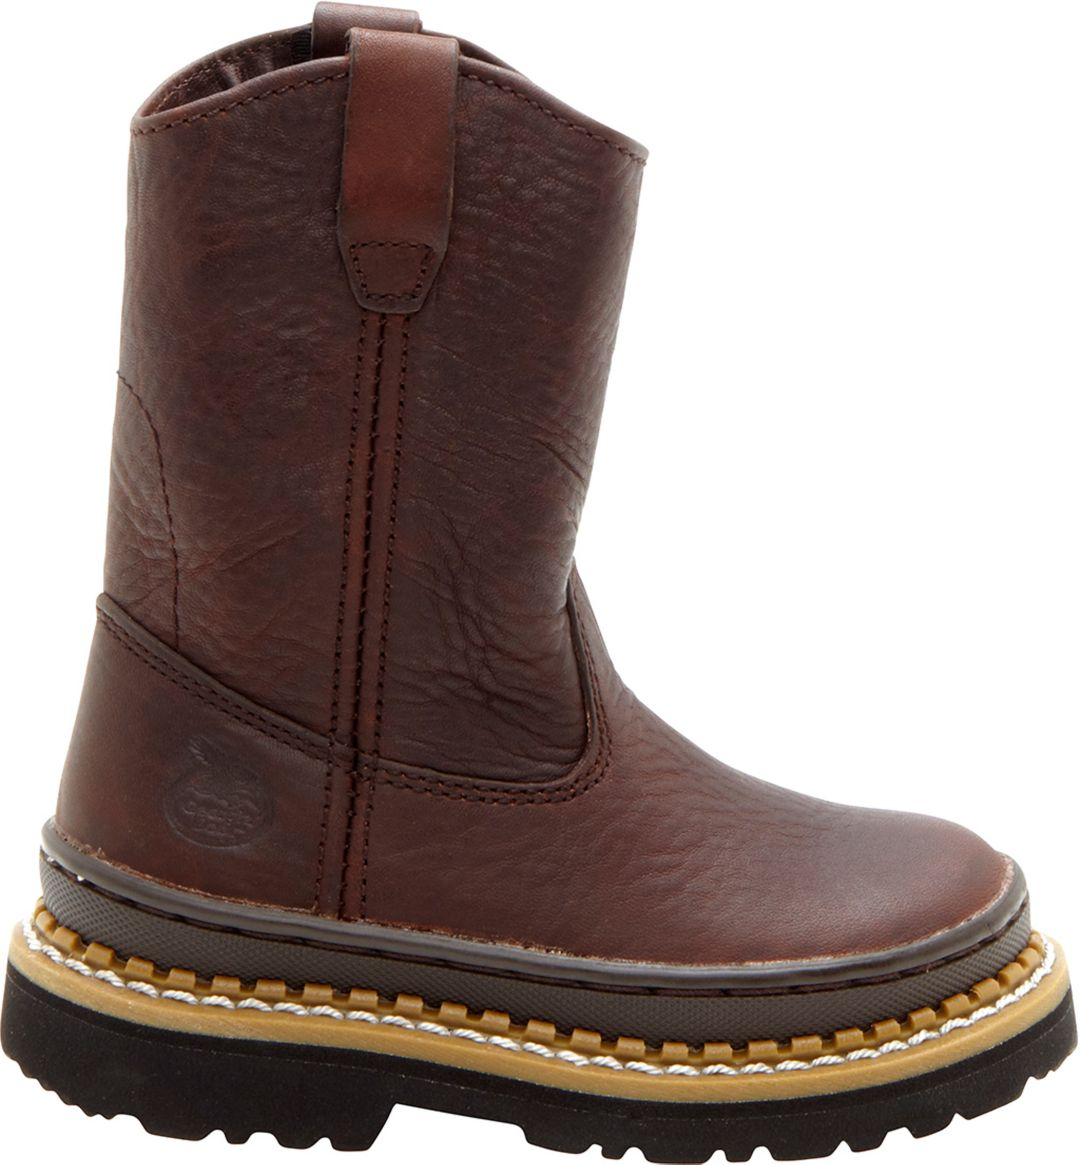 1c96684d418 Georgia Boot Kids' Wellington Work Boots